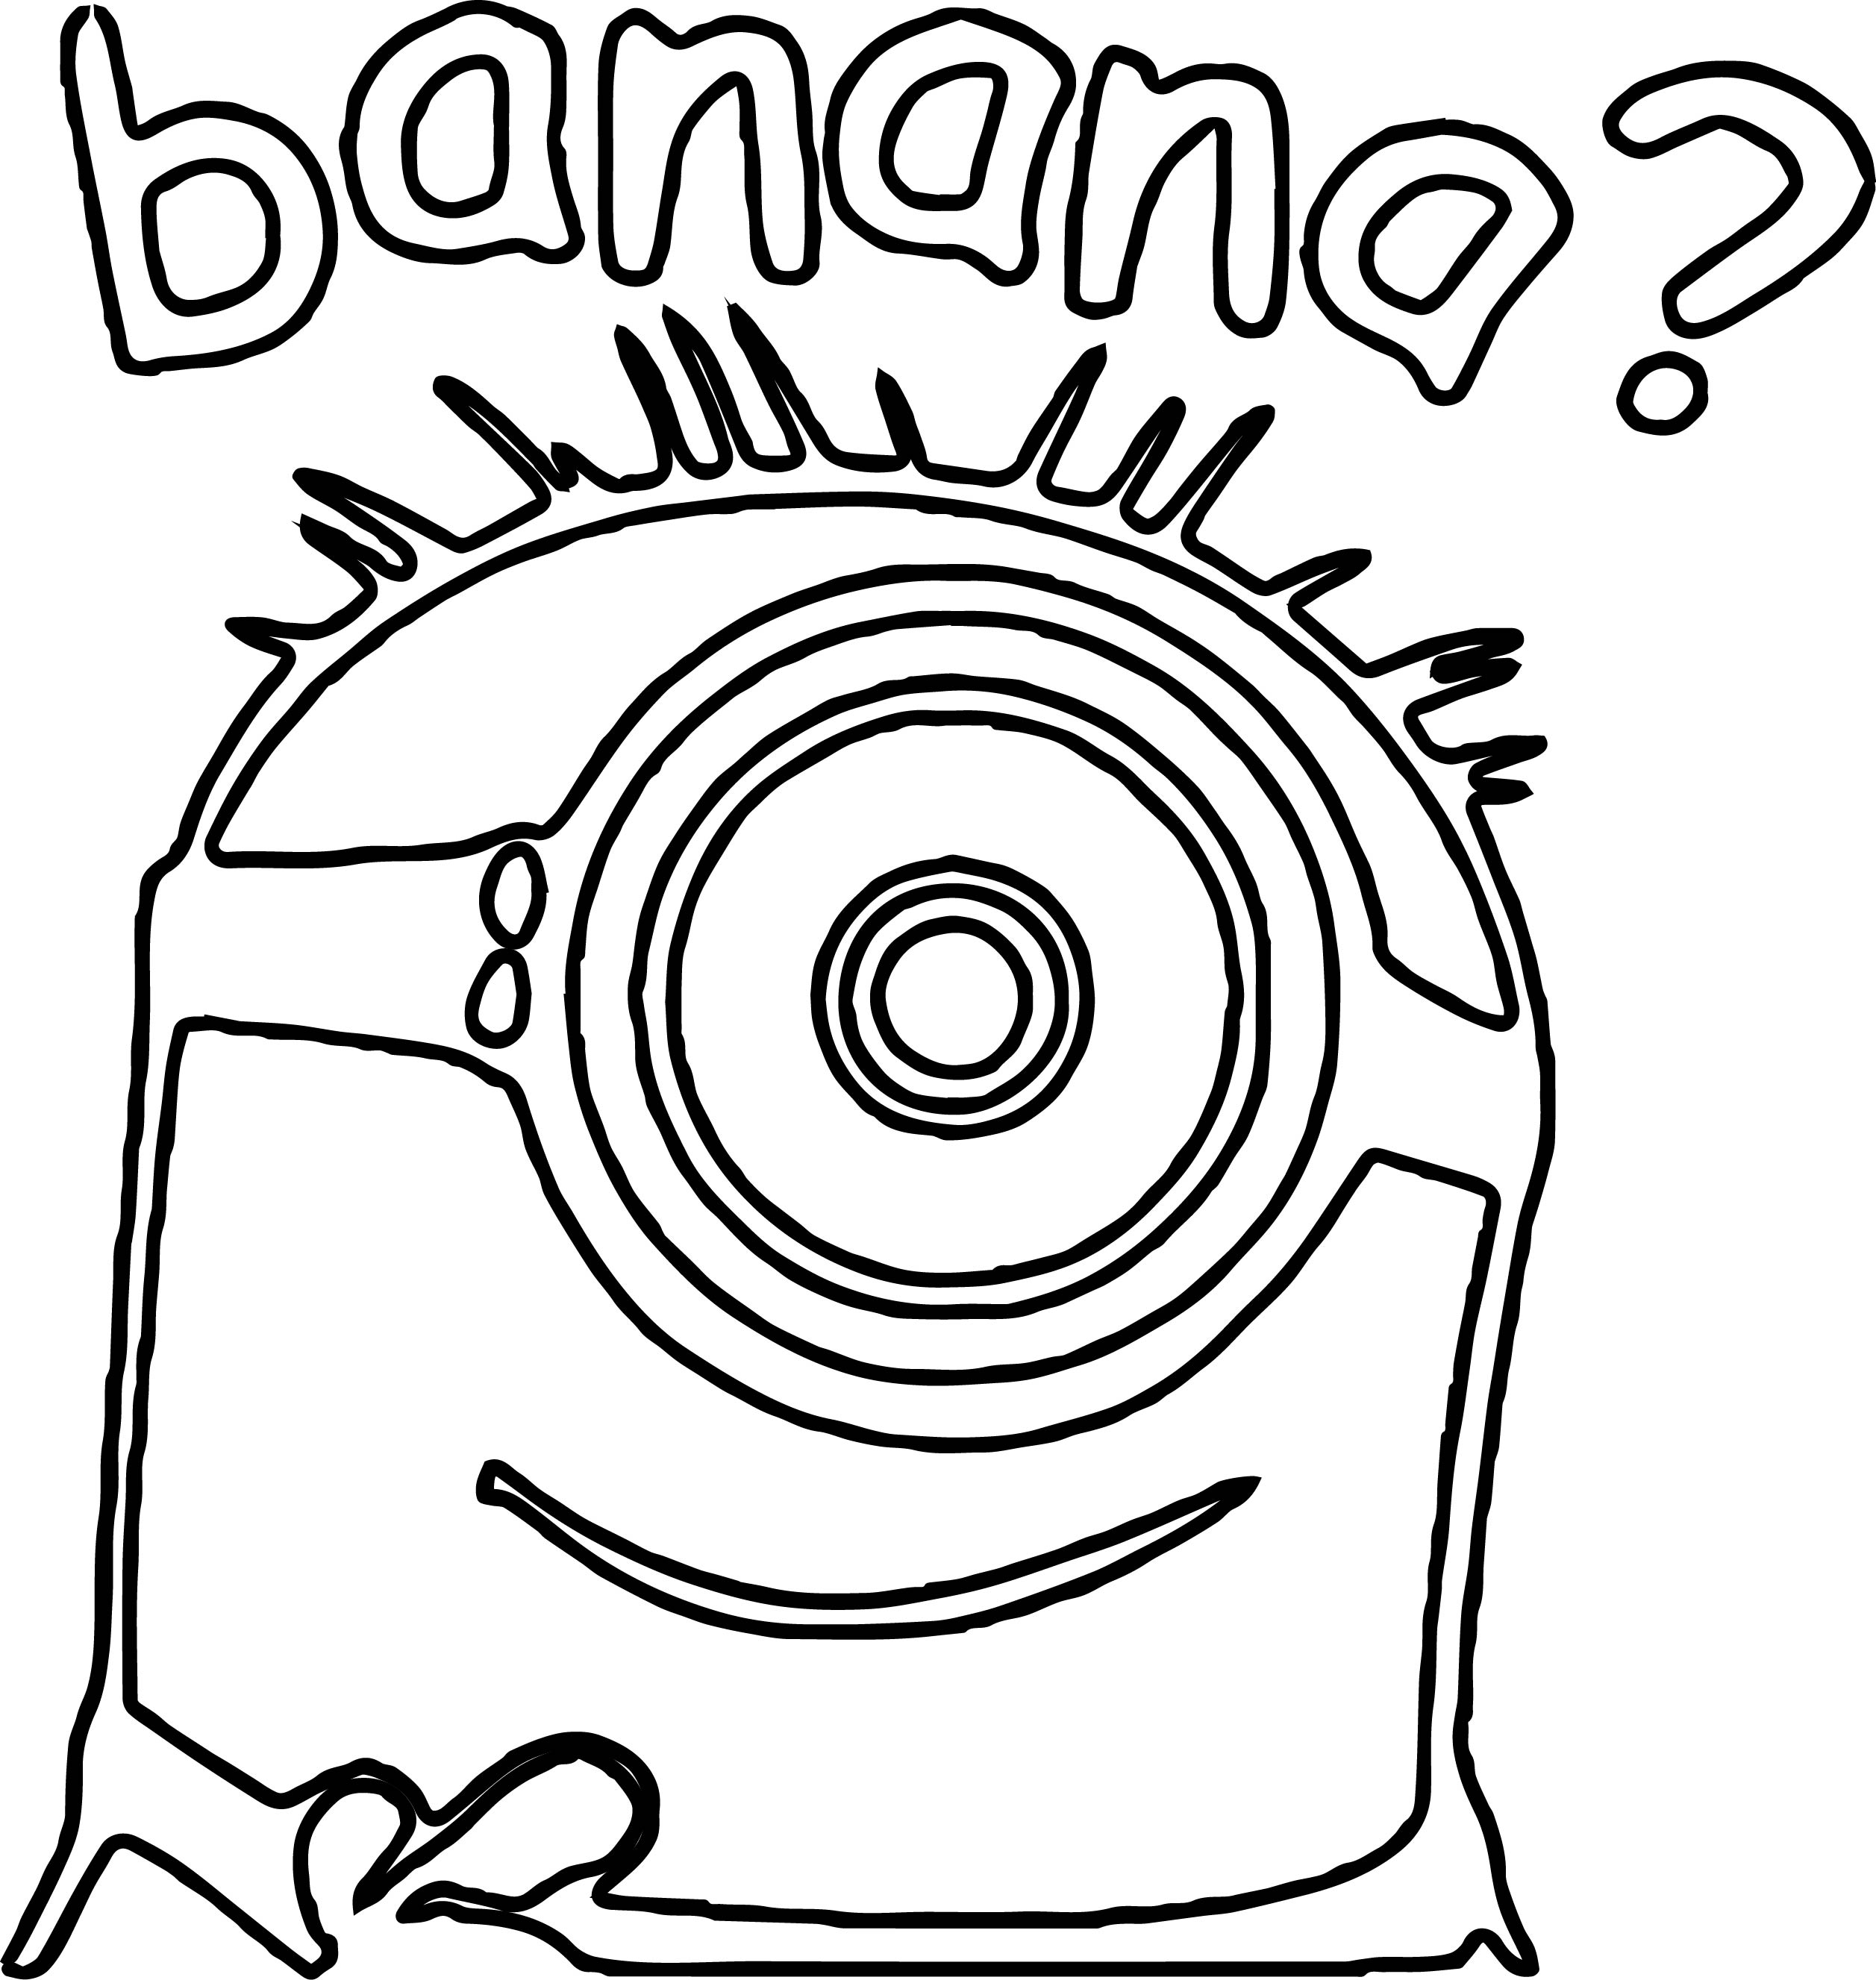 Minion Banana Question Coloring Page | Wecoloringpage.com